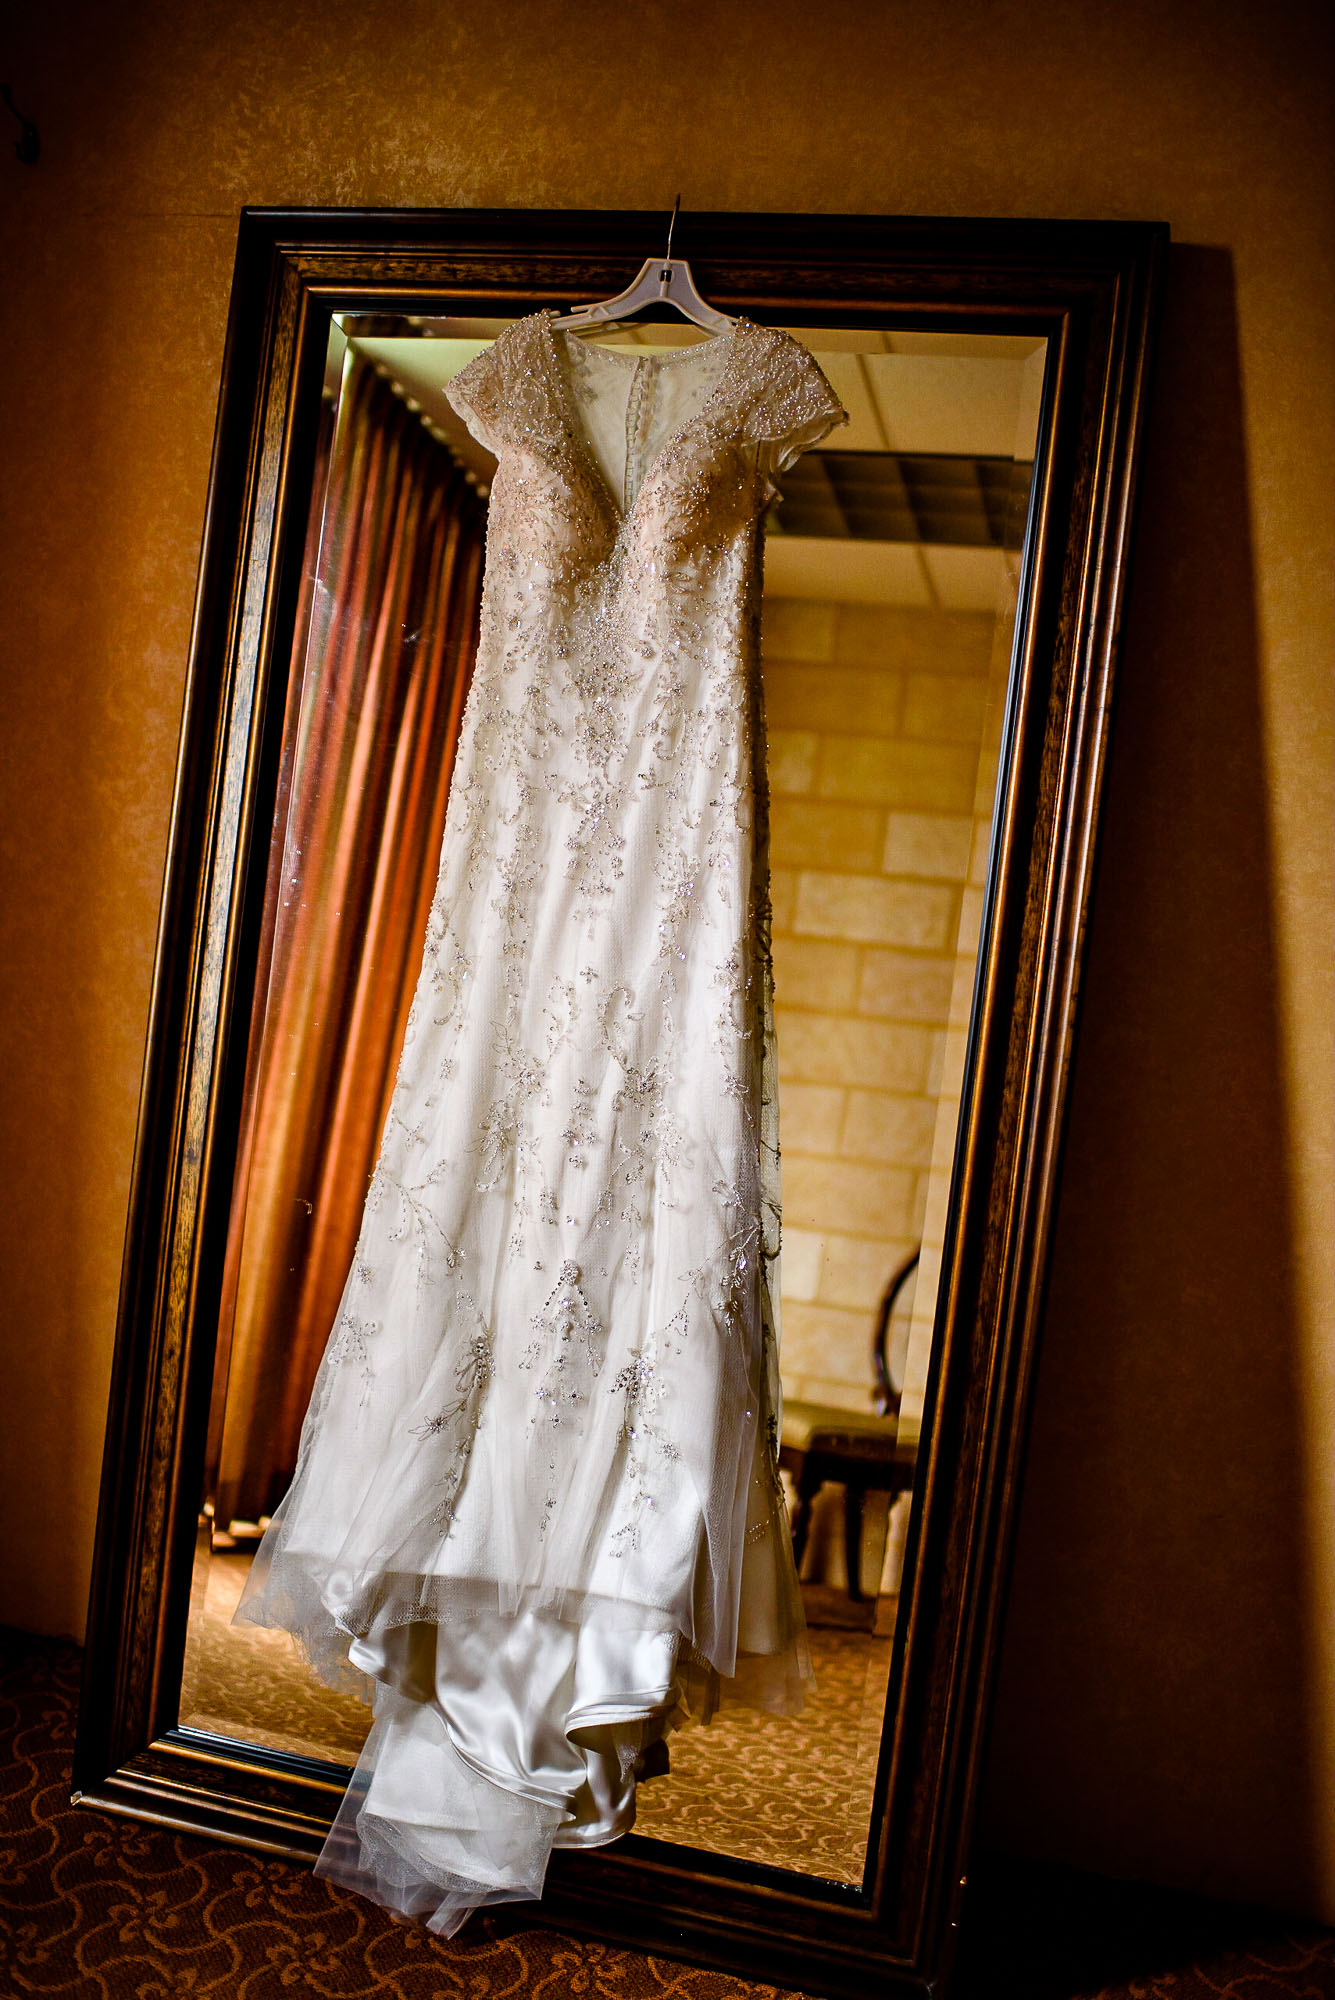 The Sephardic Temple wedding dress